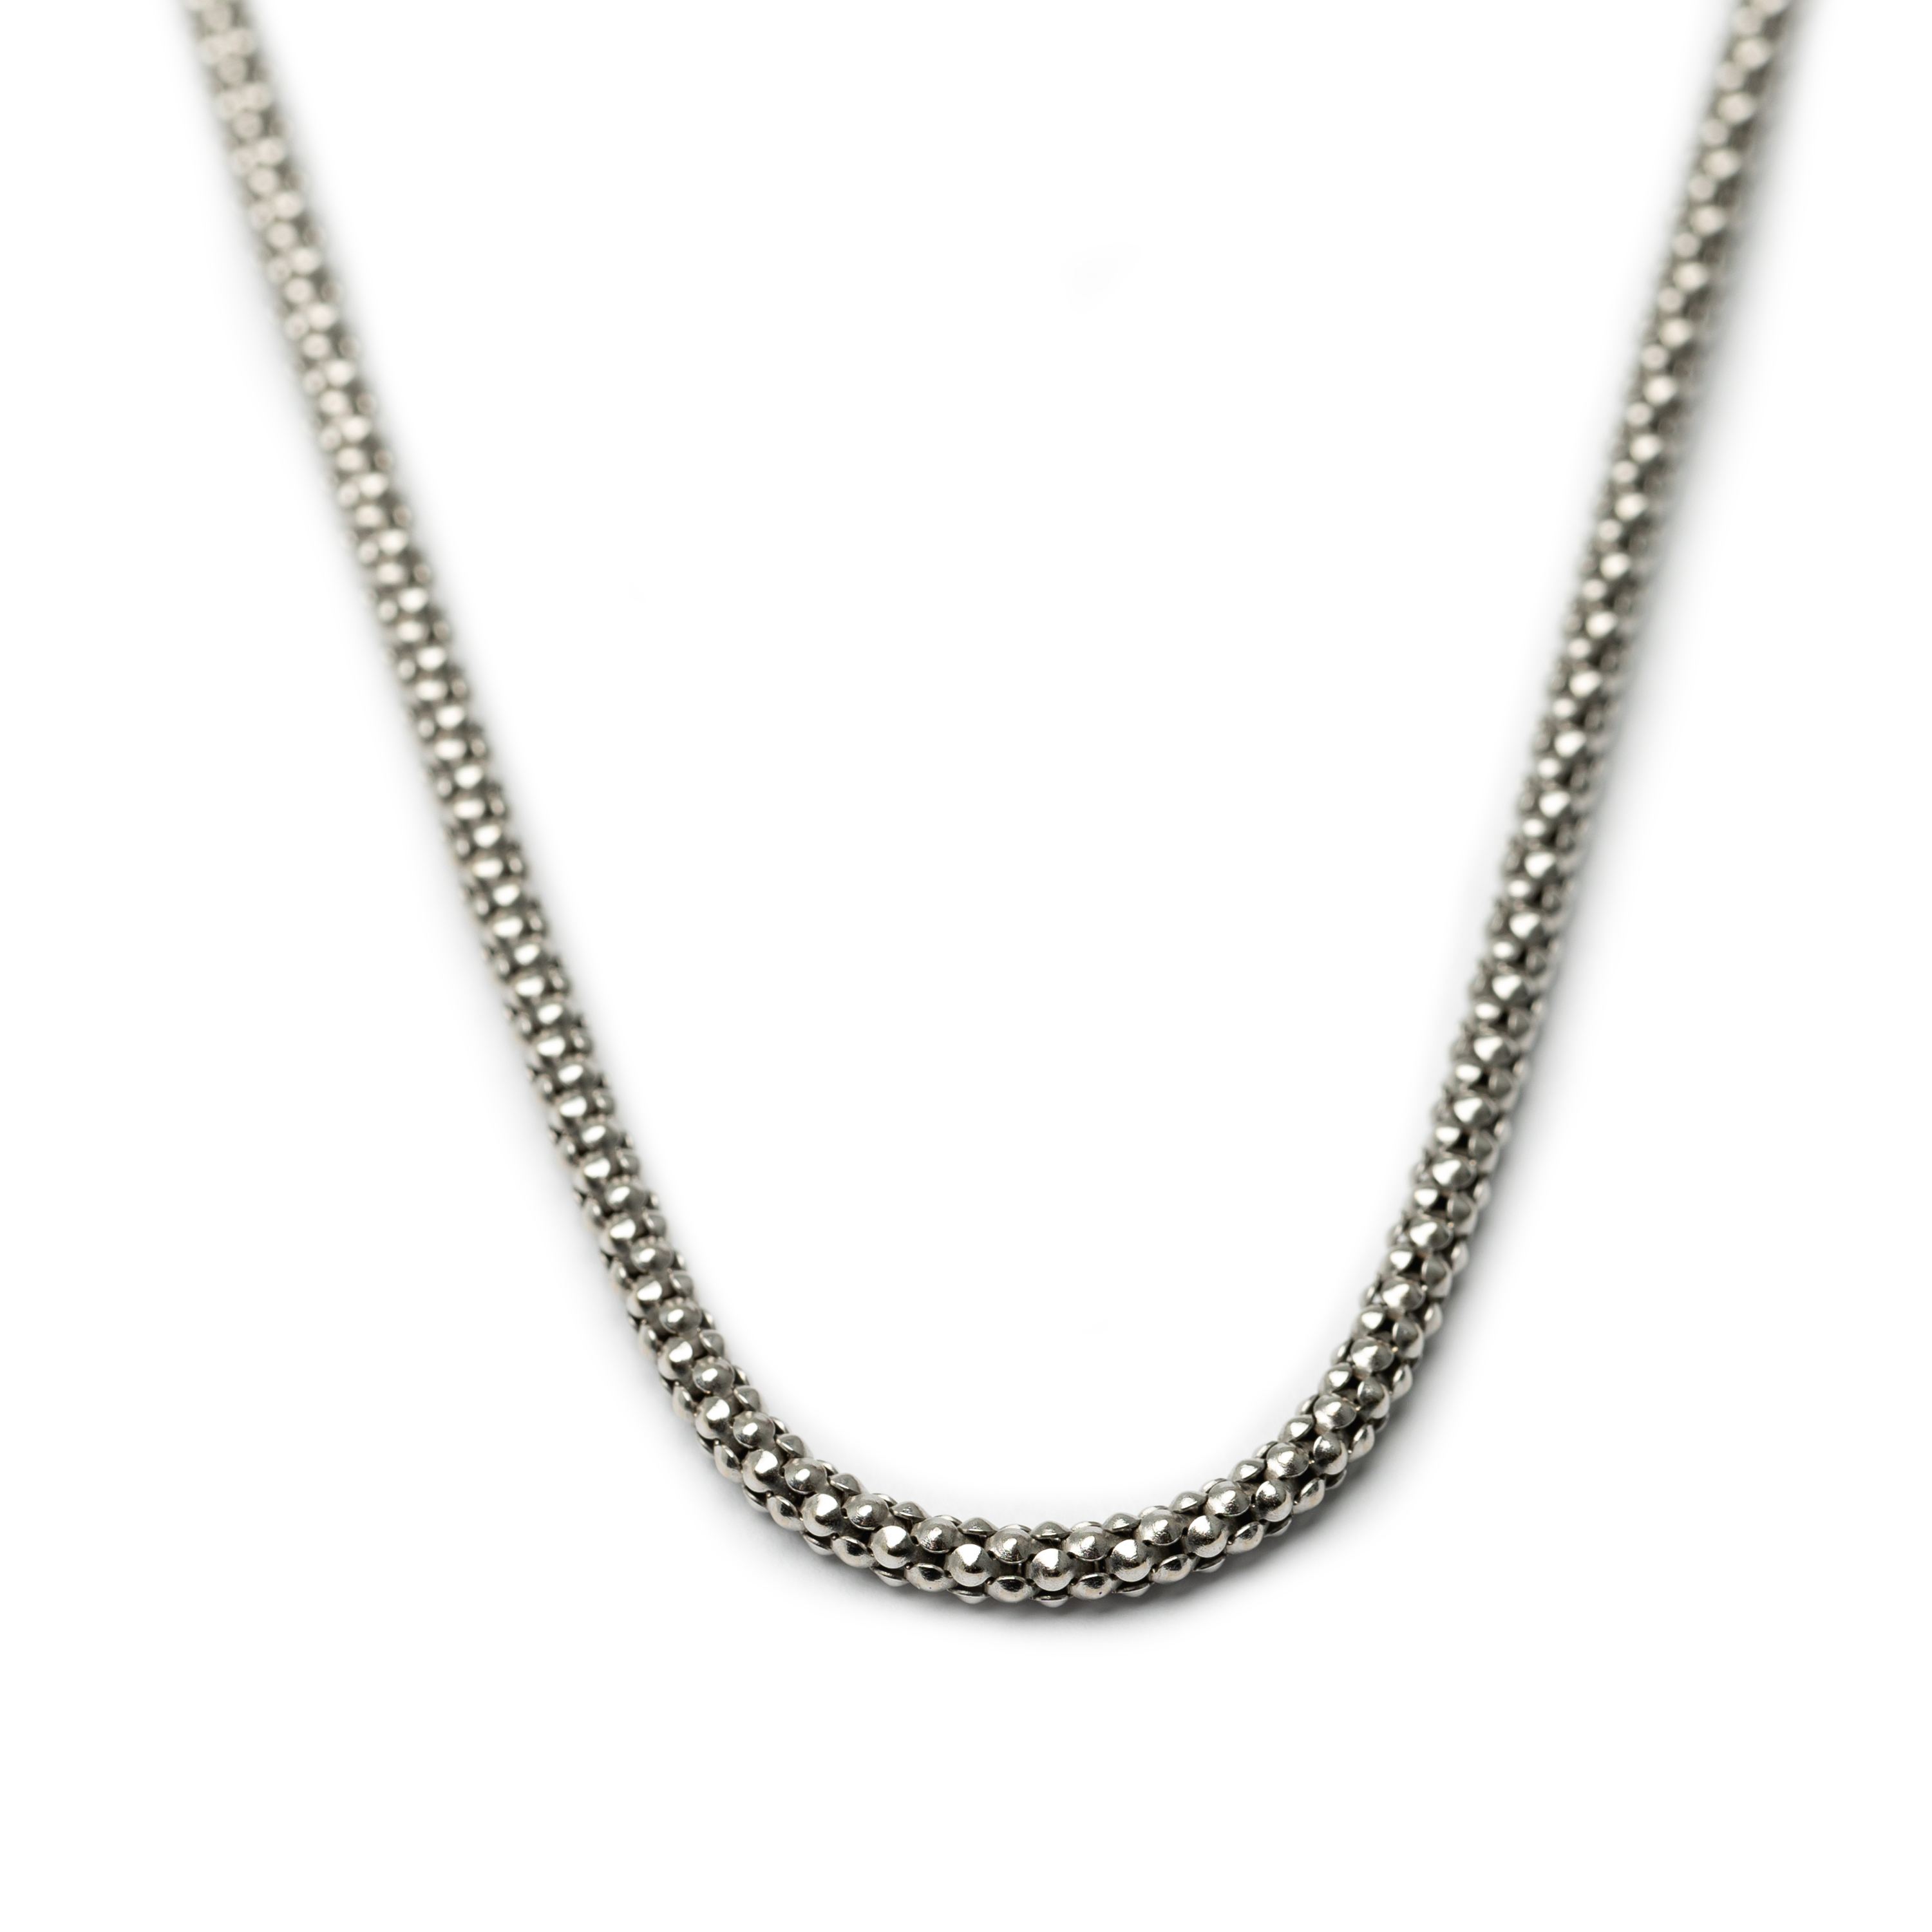 18kt White Gold Necklace.